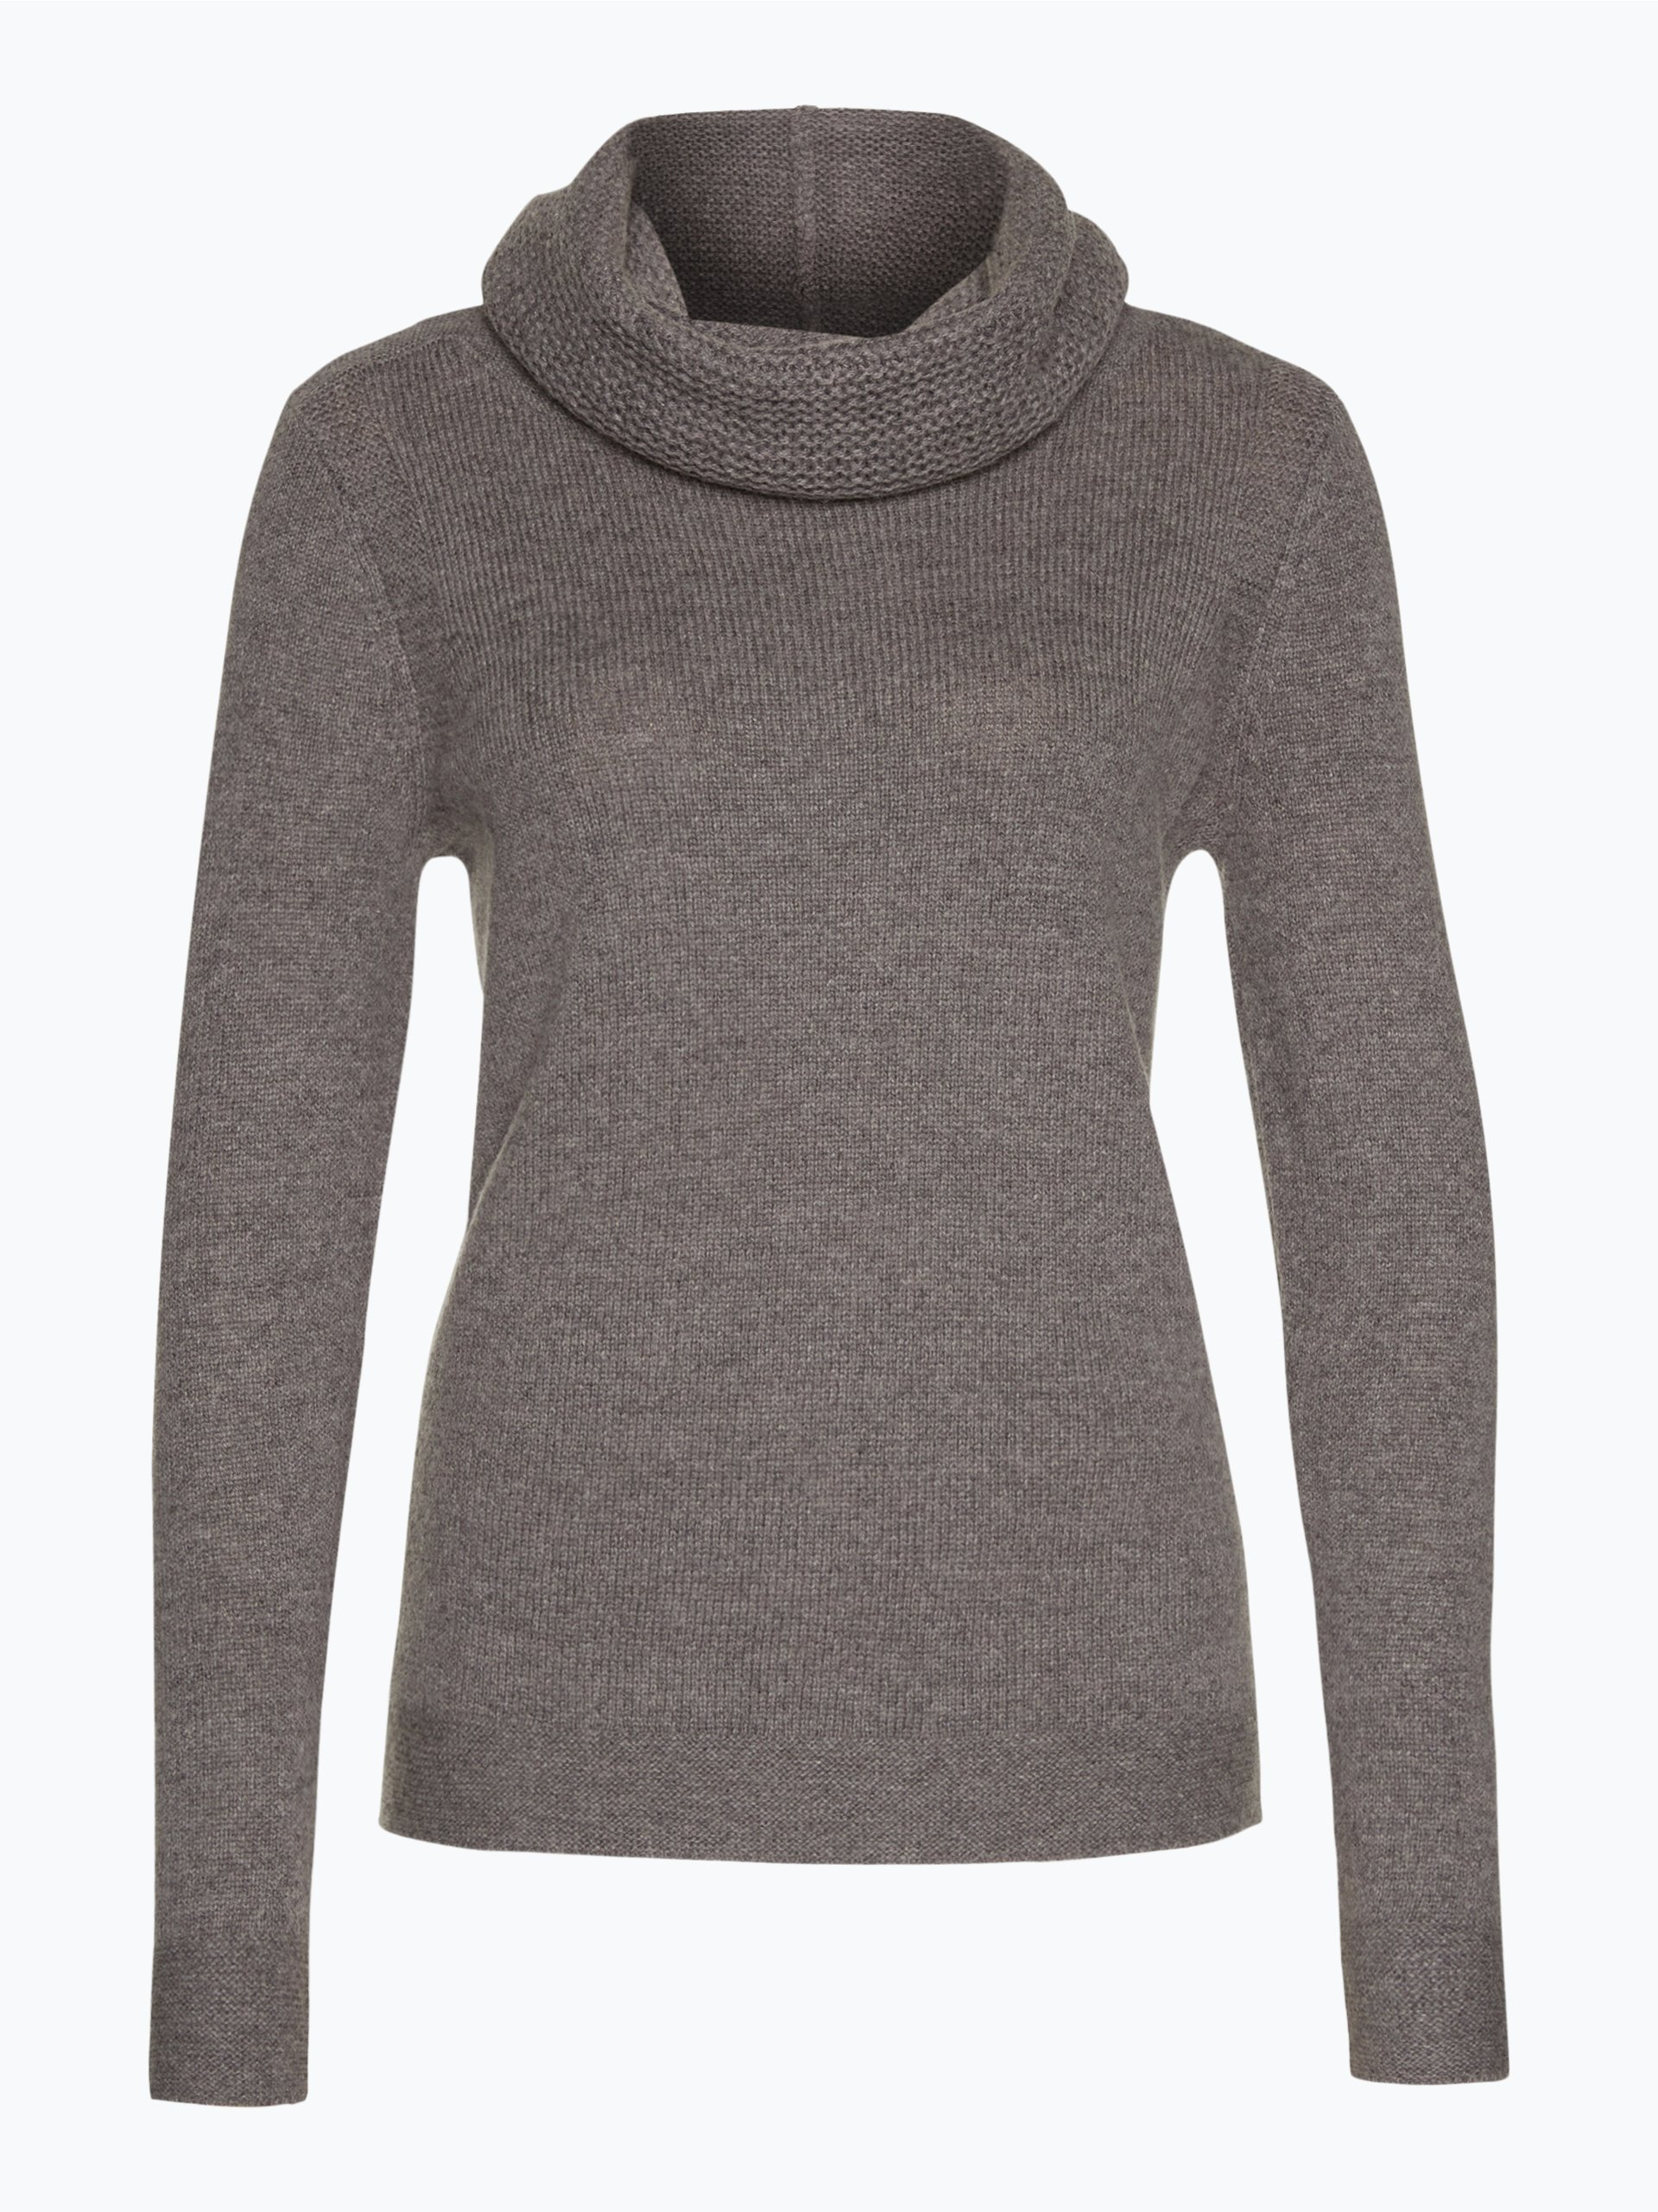 esprit casual damen pullover mit tube schal taupe uni online kaufen peek und cloppenburg de. Black Bedroom Furniture Sets. Home Design Ideas